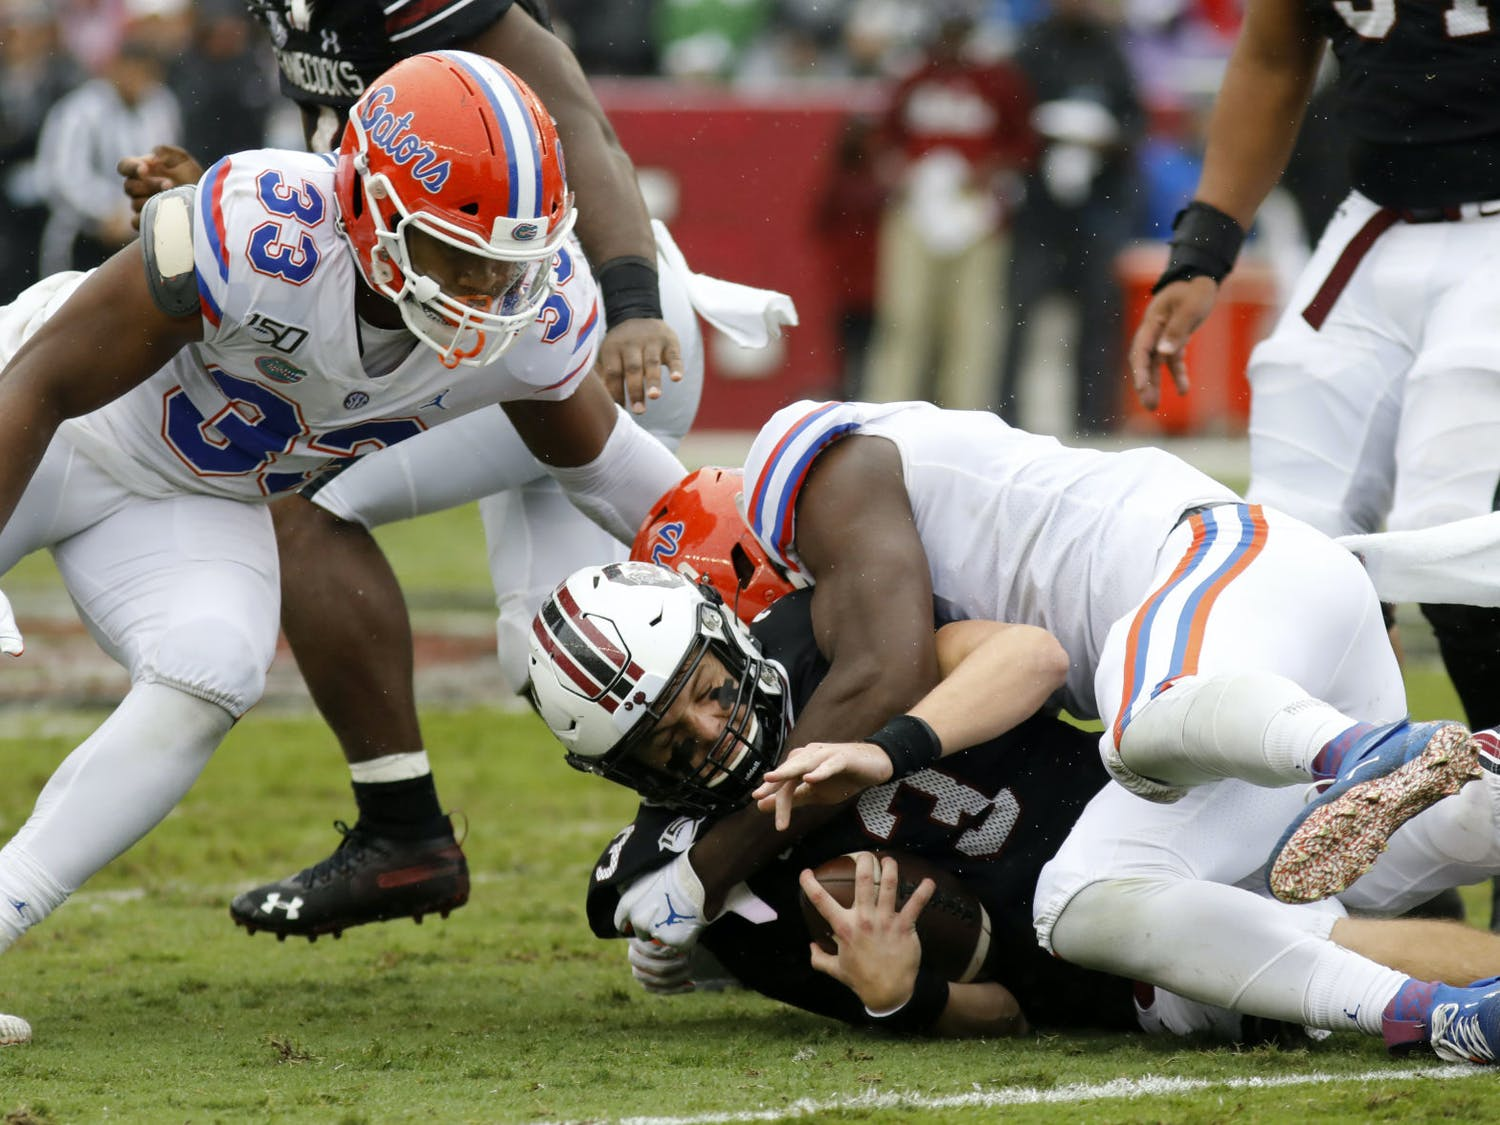 South Carolina's Ryan Hilinski, bottom, gets sacked by Florida's Zachary Carter, right, in the first half of an NCAA college football game Saturday, Oct. 19, 2019, in Columbia, SC. Florida defeated South Carolina 38-27.